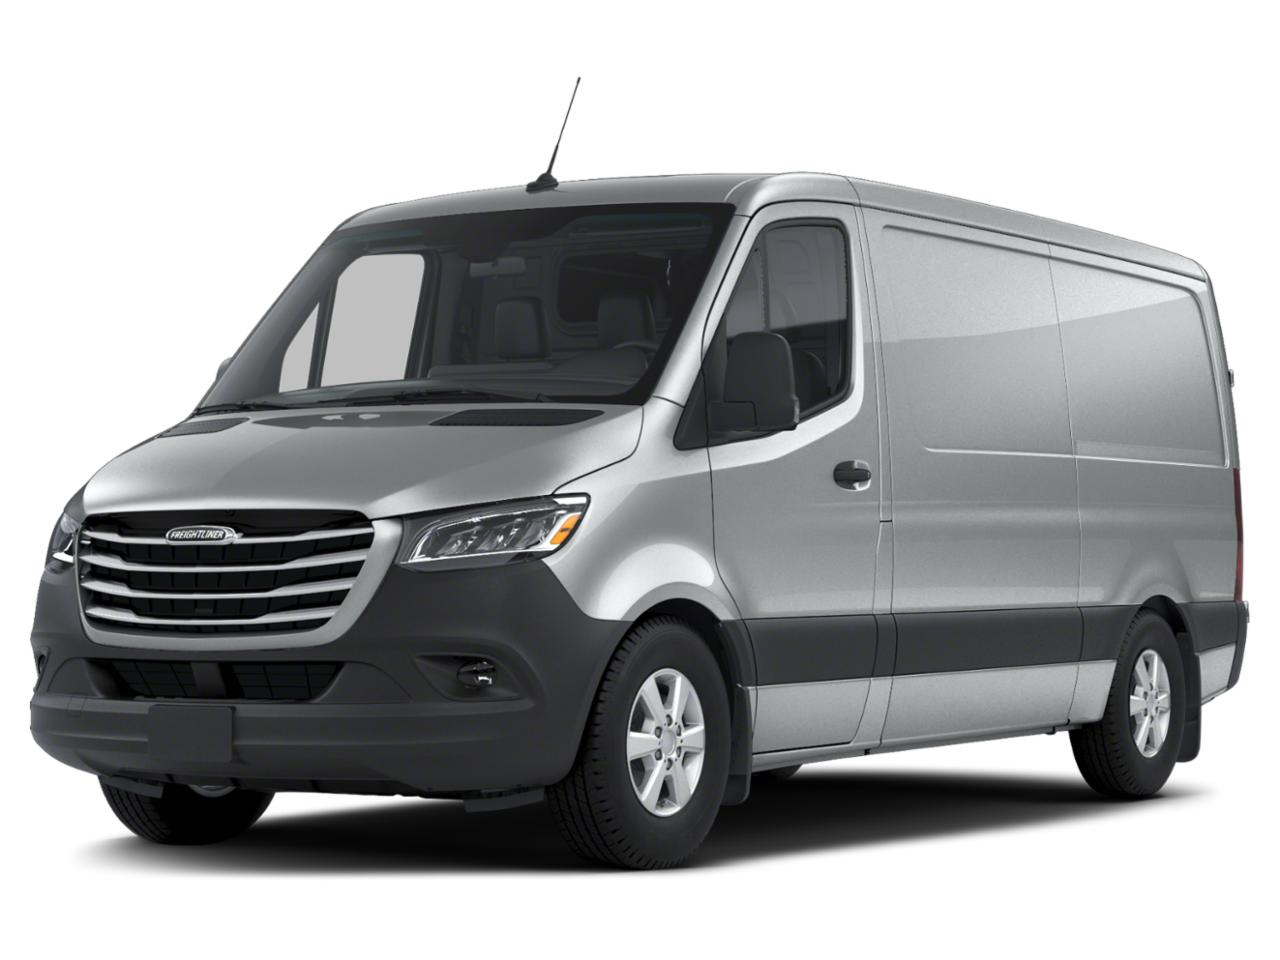 2019 Freightliner Sprinter Cargo Van Vehicle Photo in Lewisville, TX 75067